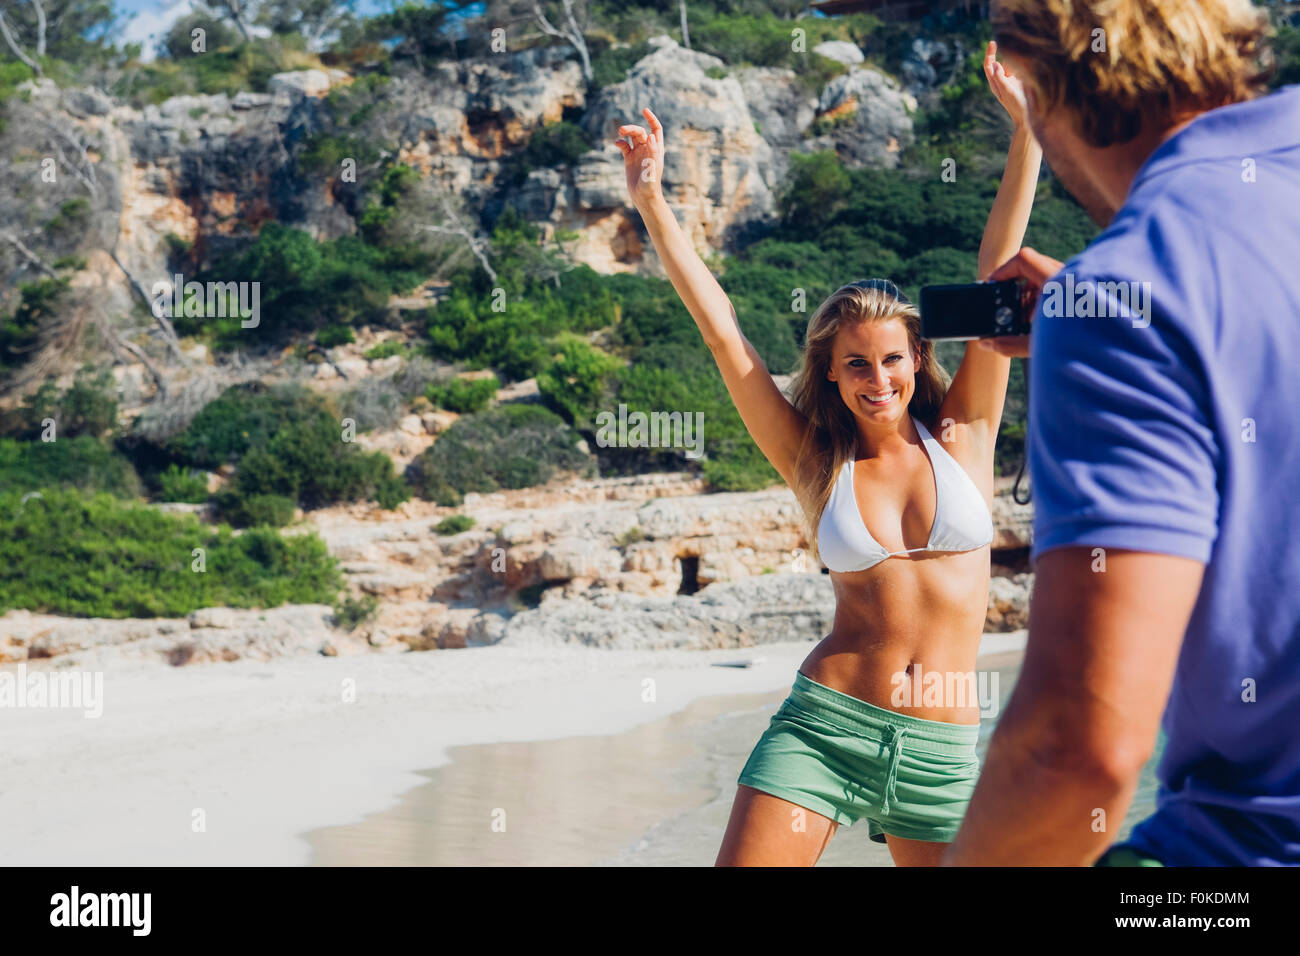 Spain, Majorca, woman on the beach posing for man with camera - Stock Image